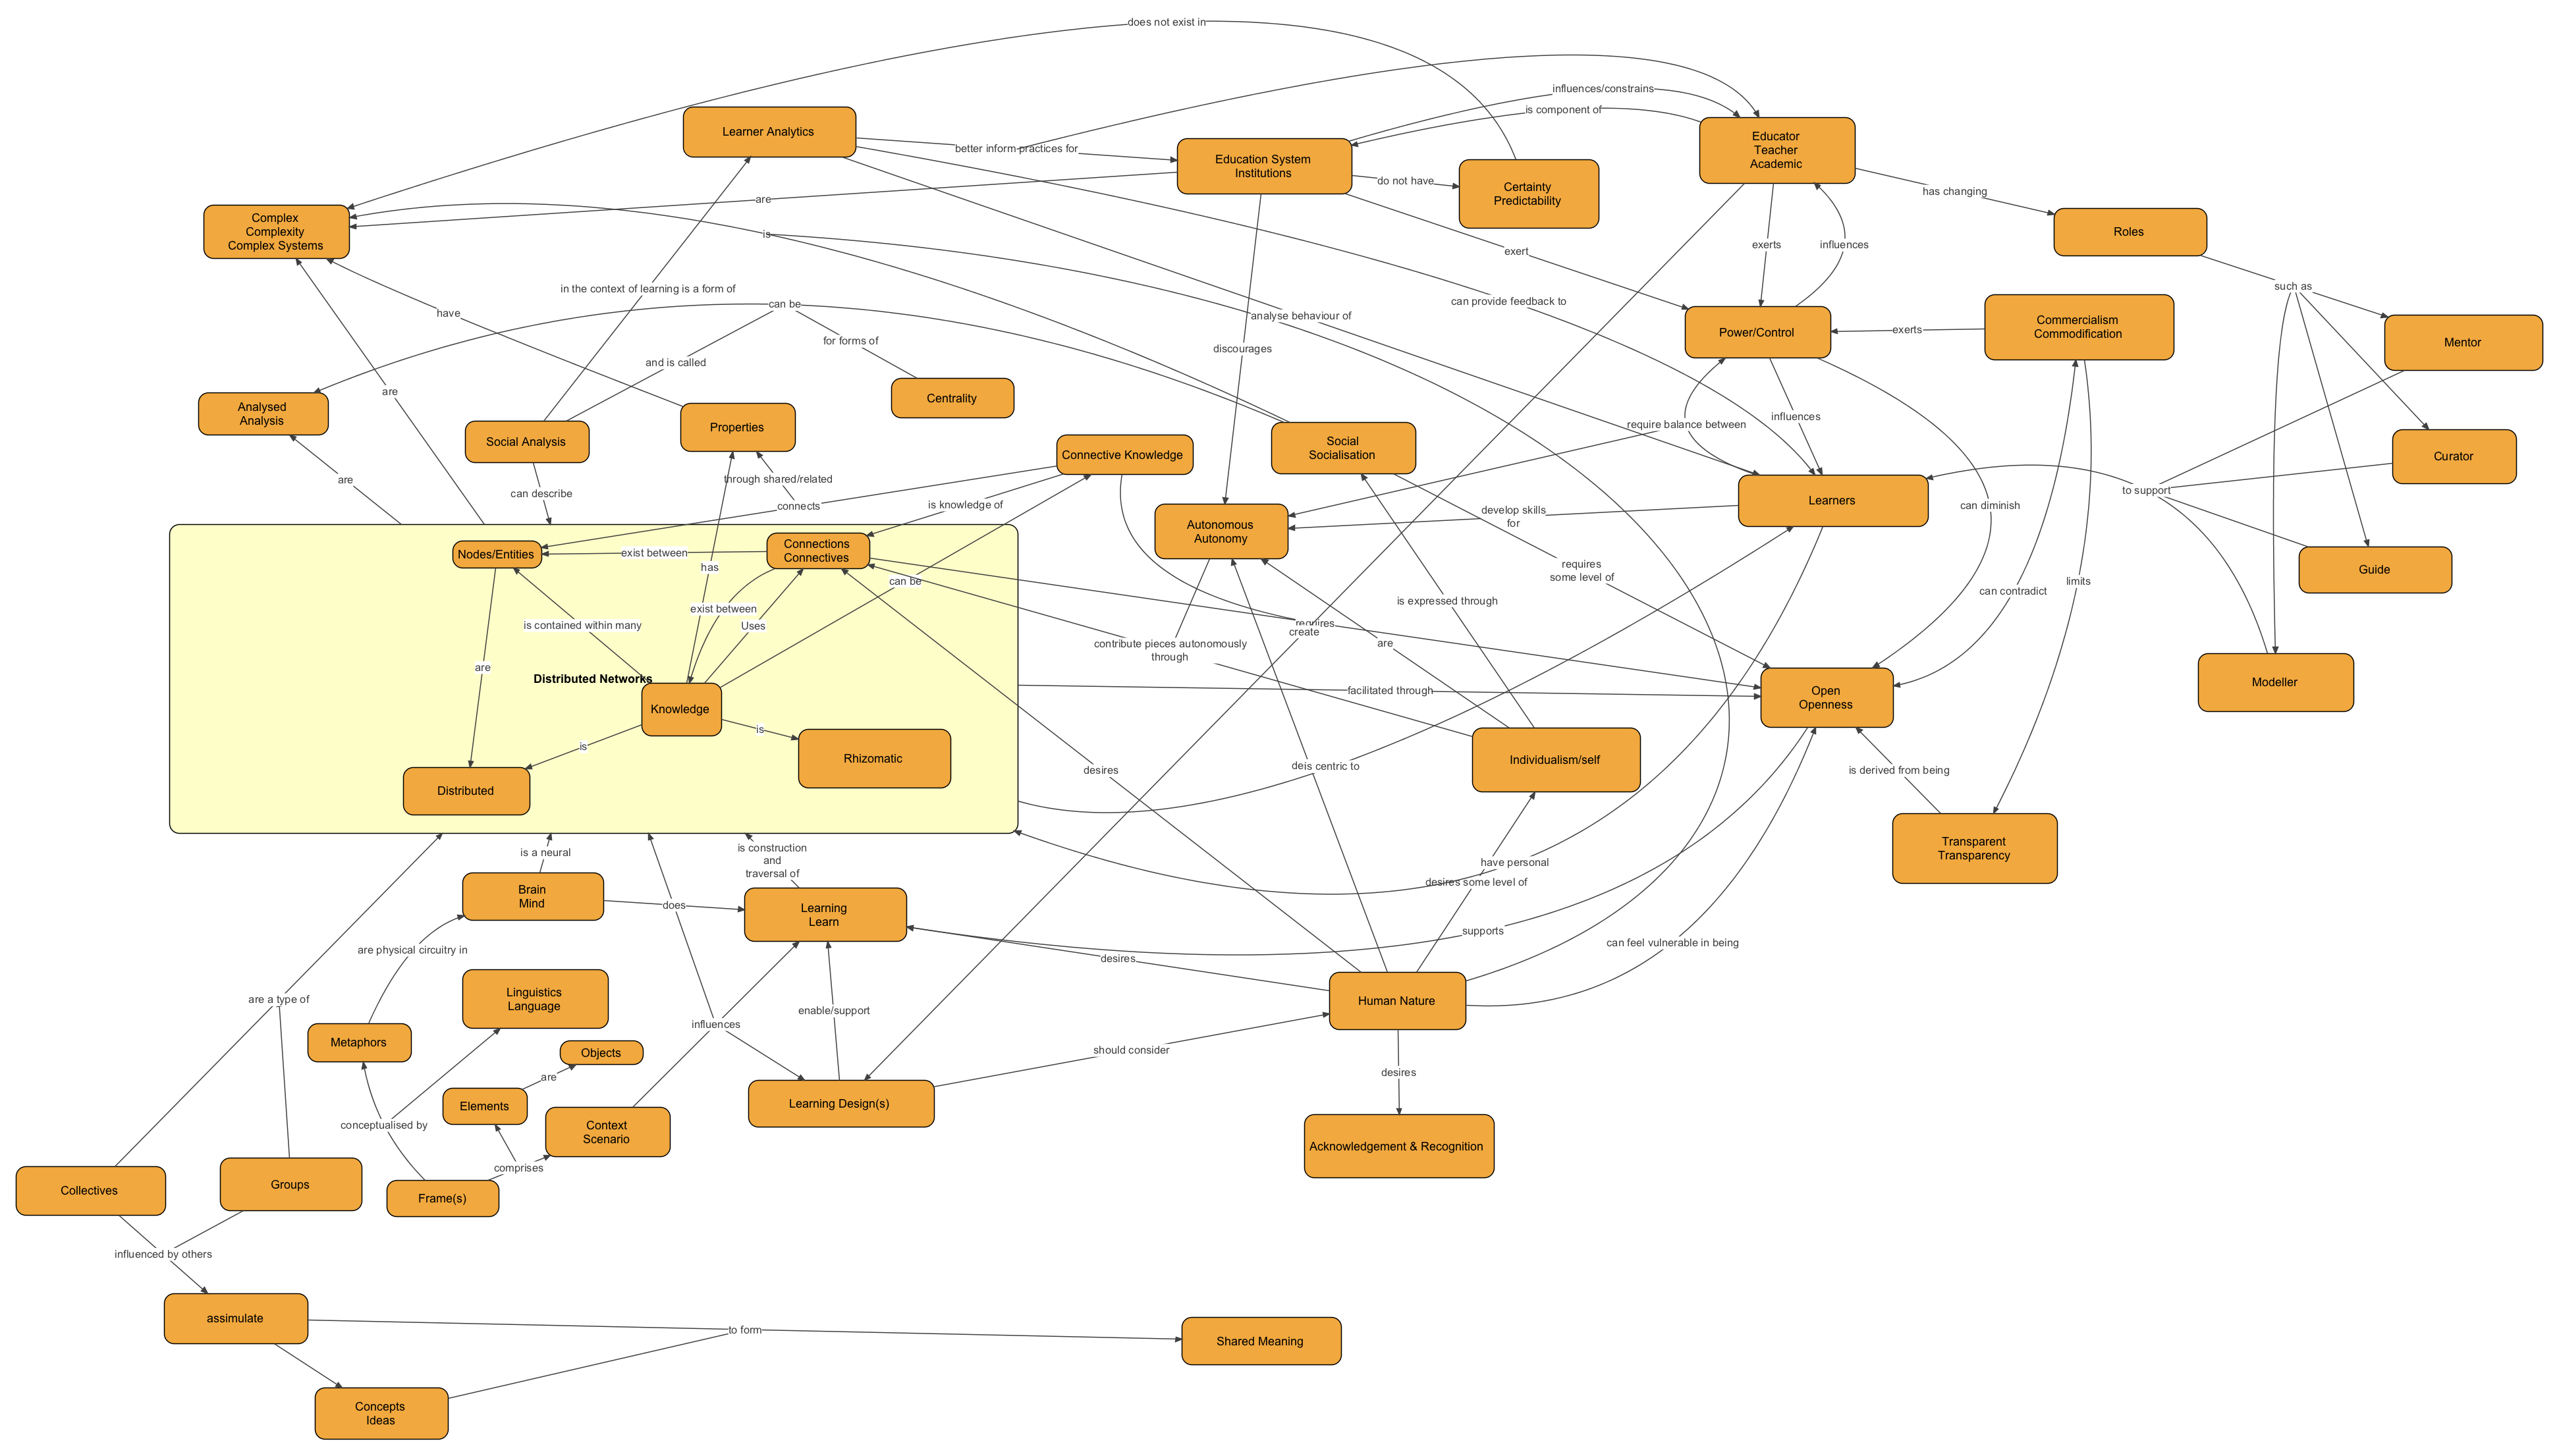 Blank Concept Maps Templates File name : concept-map-final.png ...